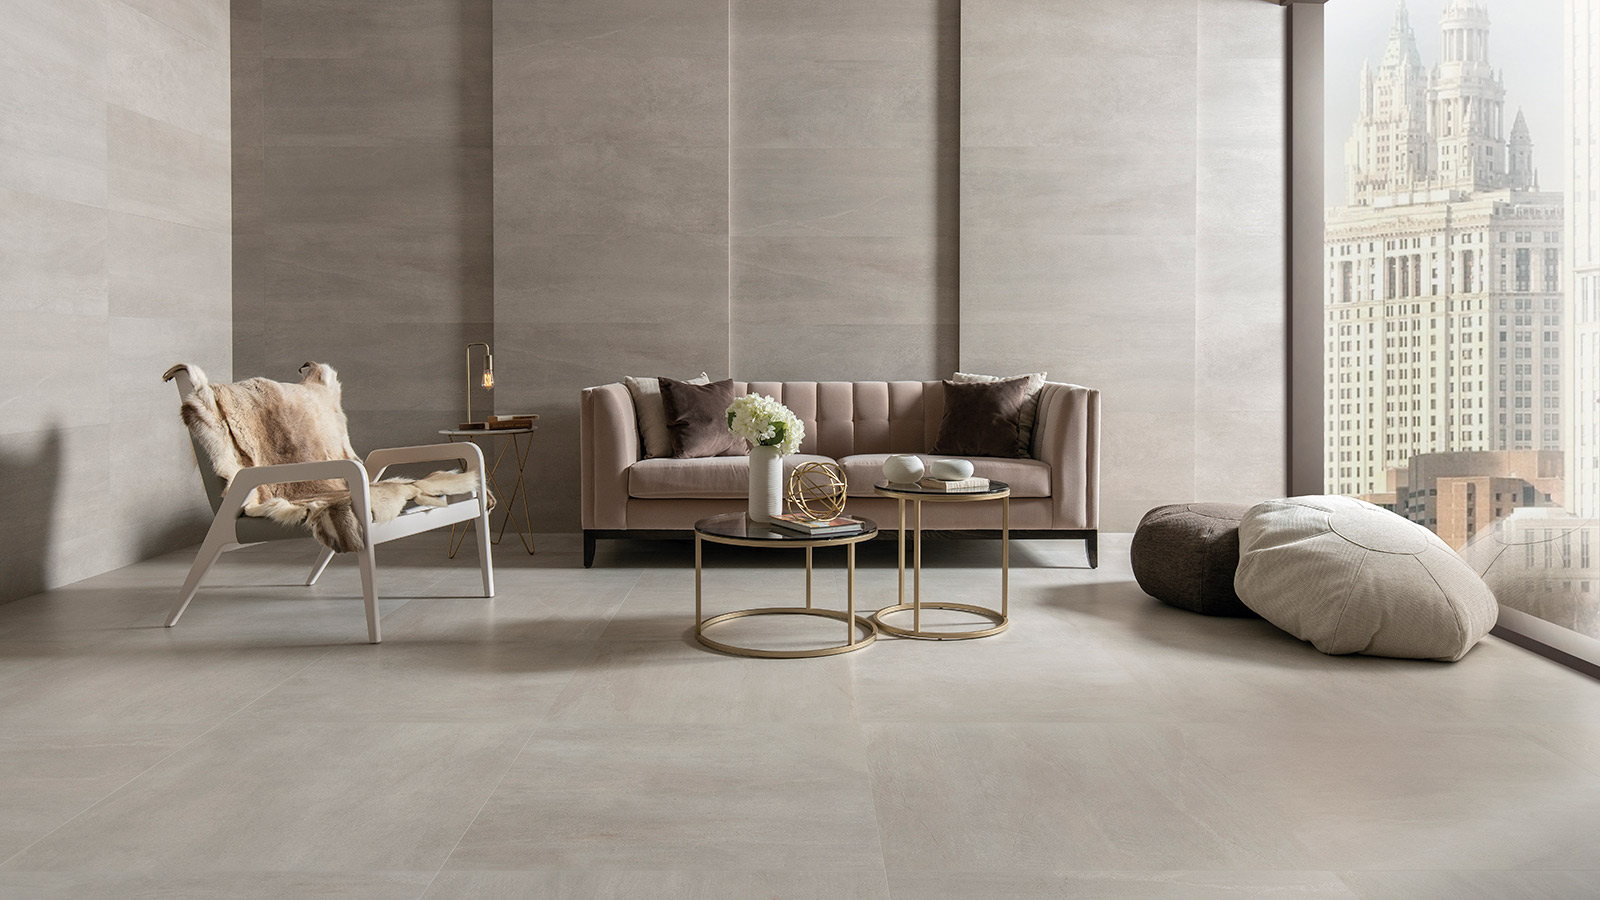 Venis brings stone and cement together in its new Urban collection